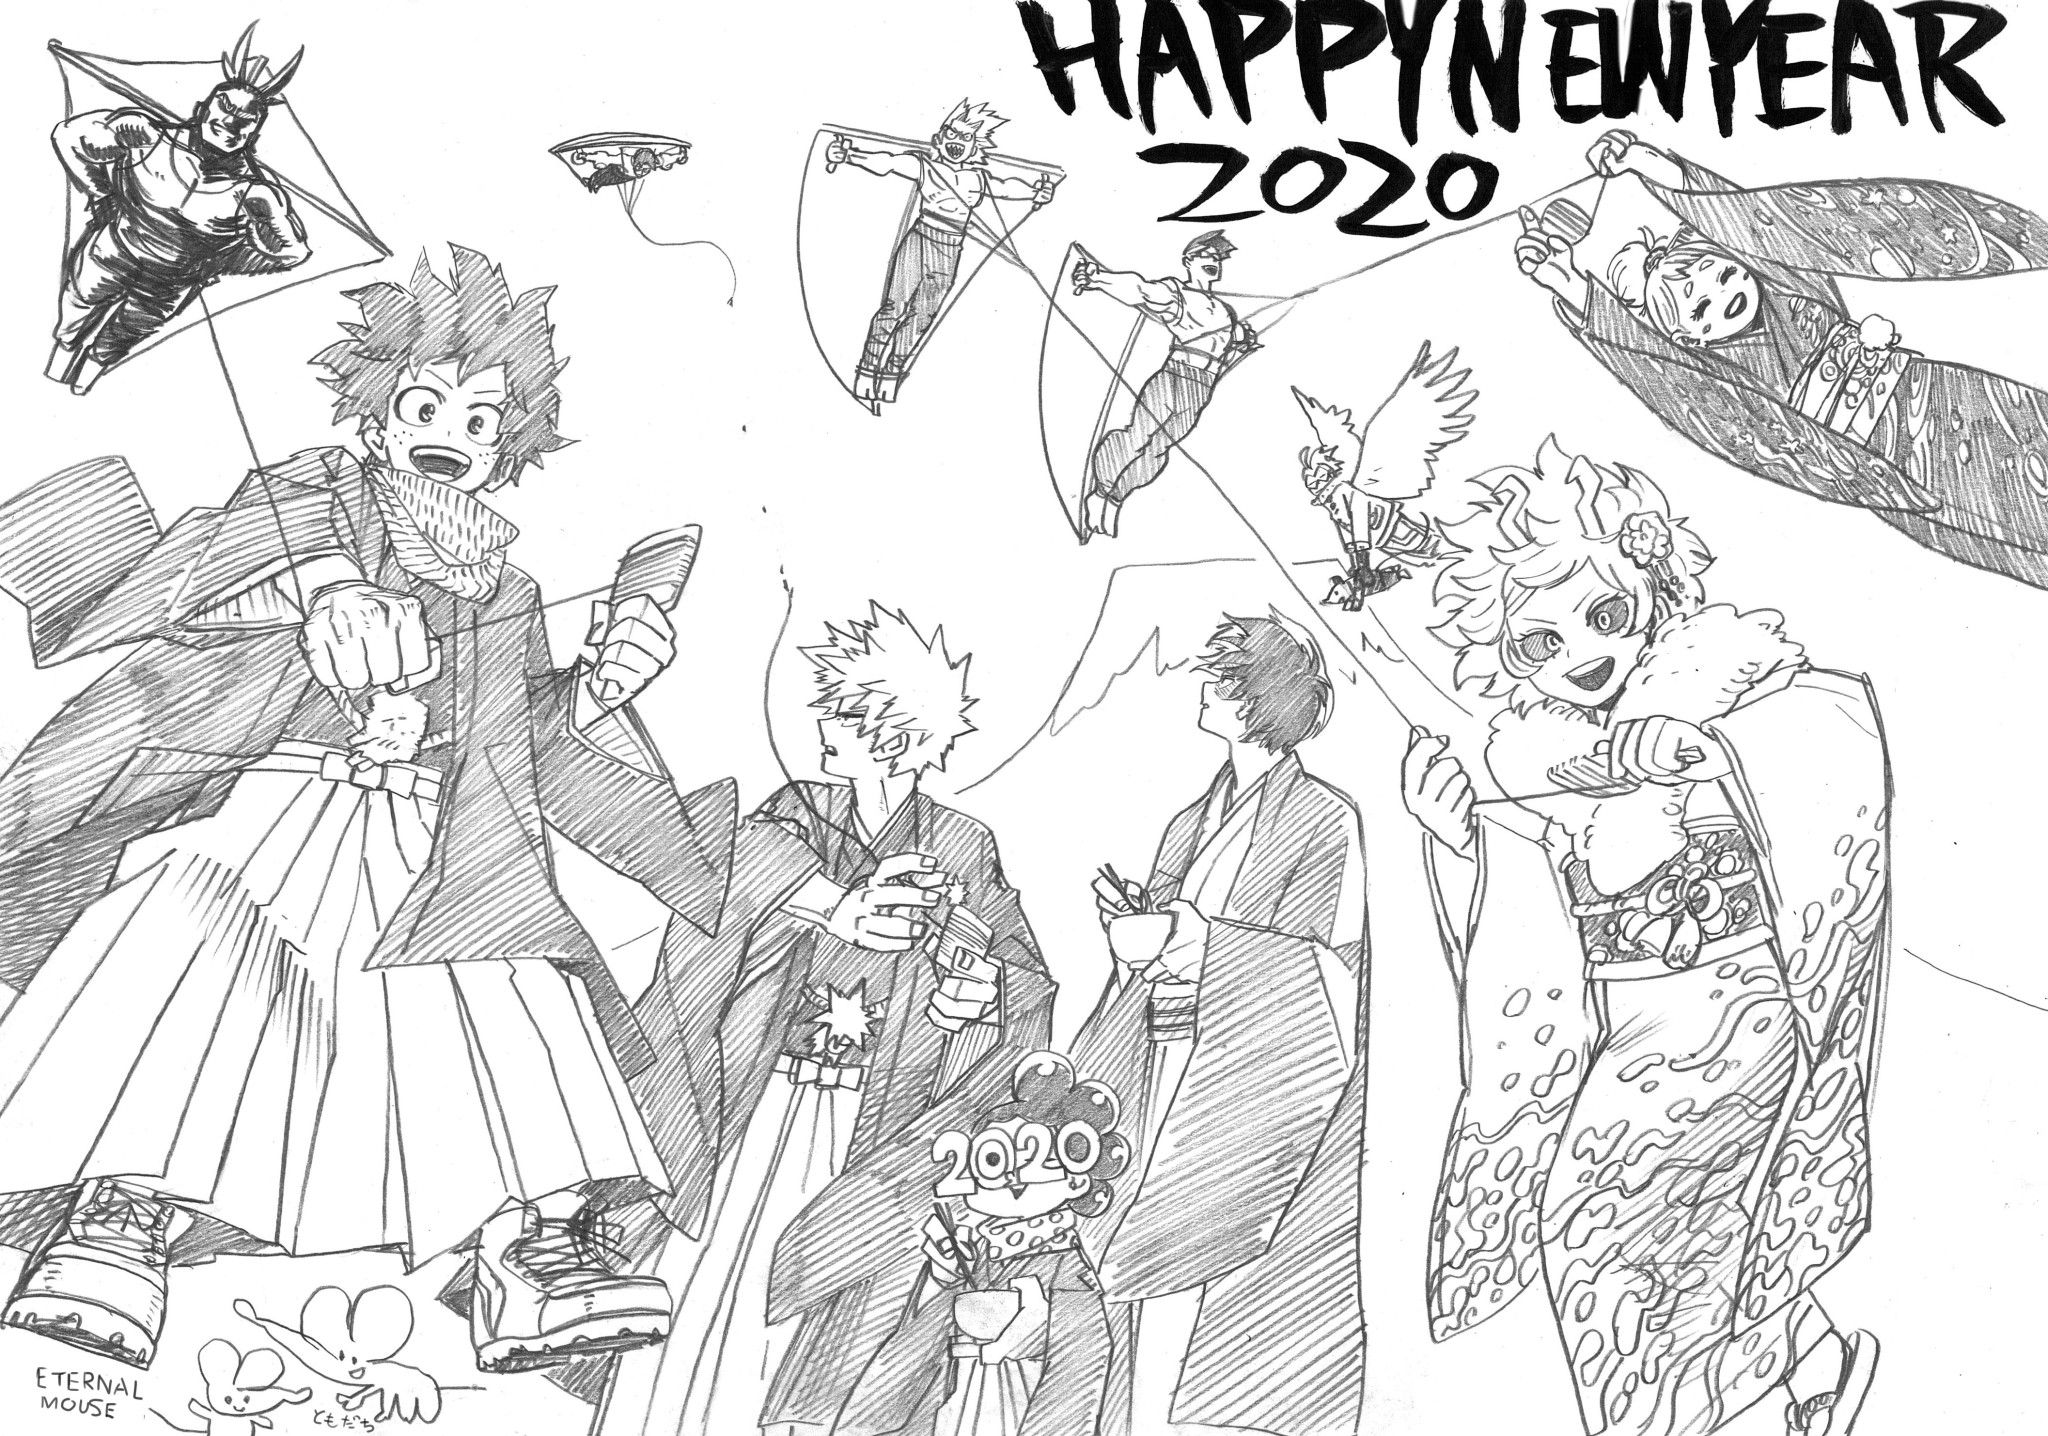 HAPPY NEW YEAR 2020 FROM BNHA🎉 bnha midoriya_izuku